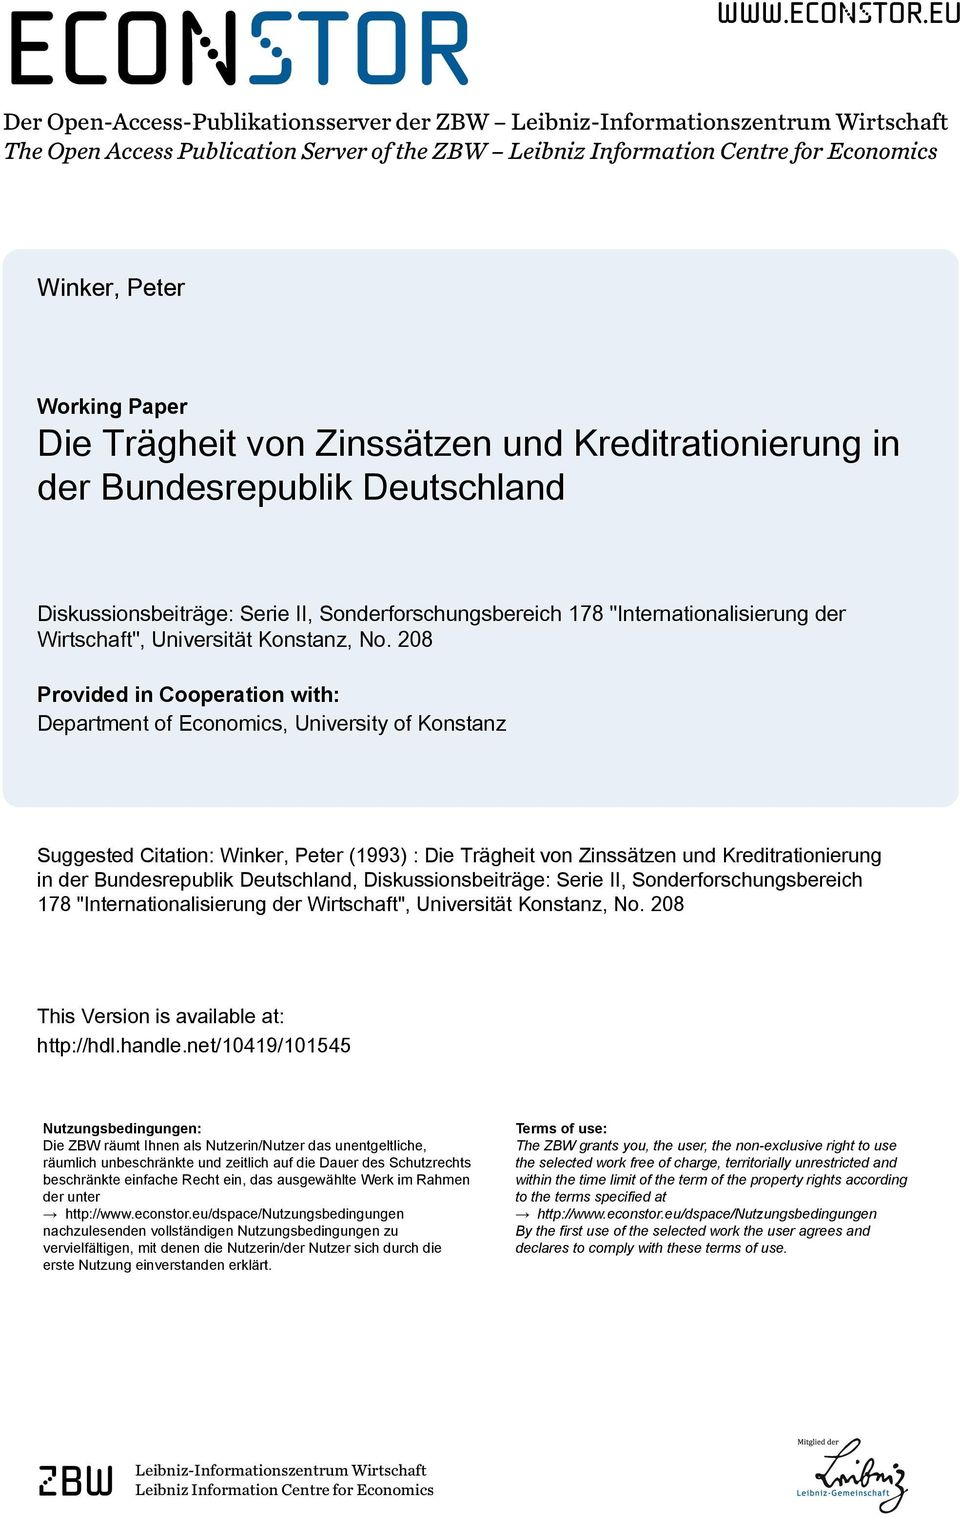 eu Der Open-Access-Publikationsserver der ZBW Leibniz-Informationszentrum Wirtschaft The Open Access Publication Server of the ZBW Leibniz Information Centre for Economics Winker, Peter Working Paper